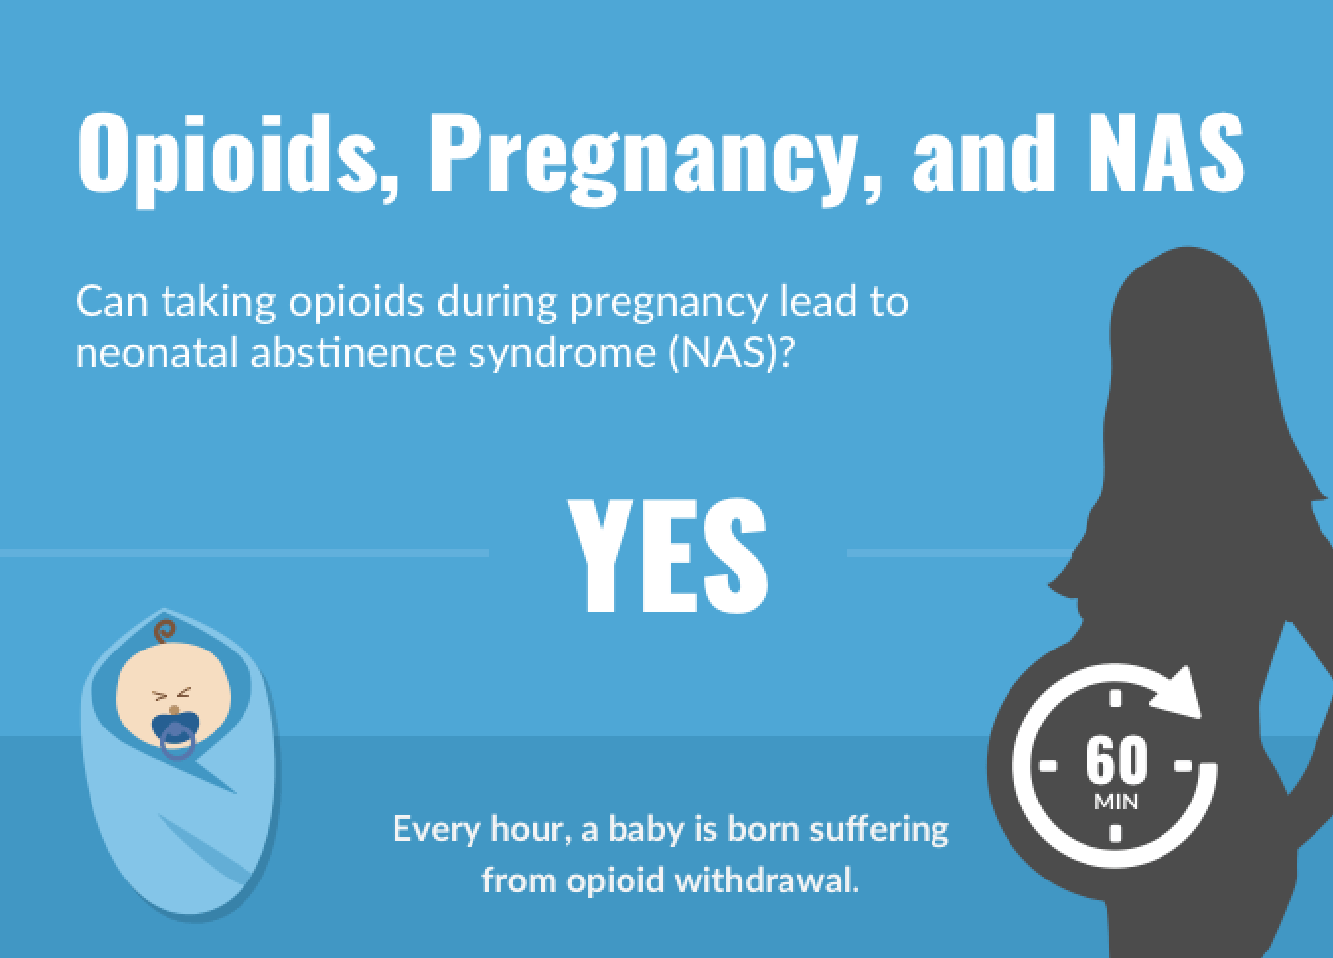 Opioids, Pregnancy, and Neonatal Abstinence Syndrome